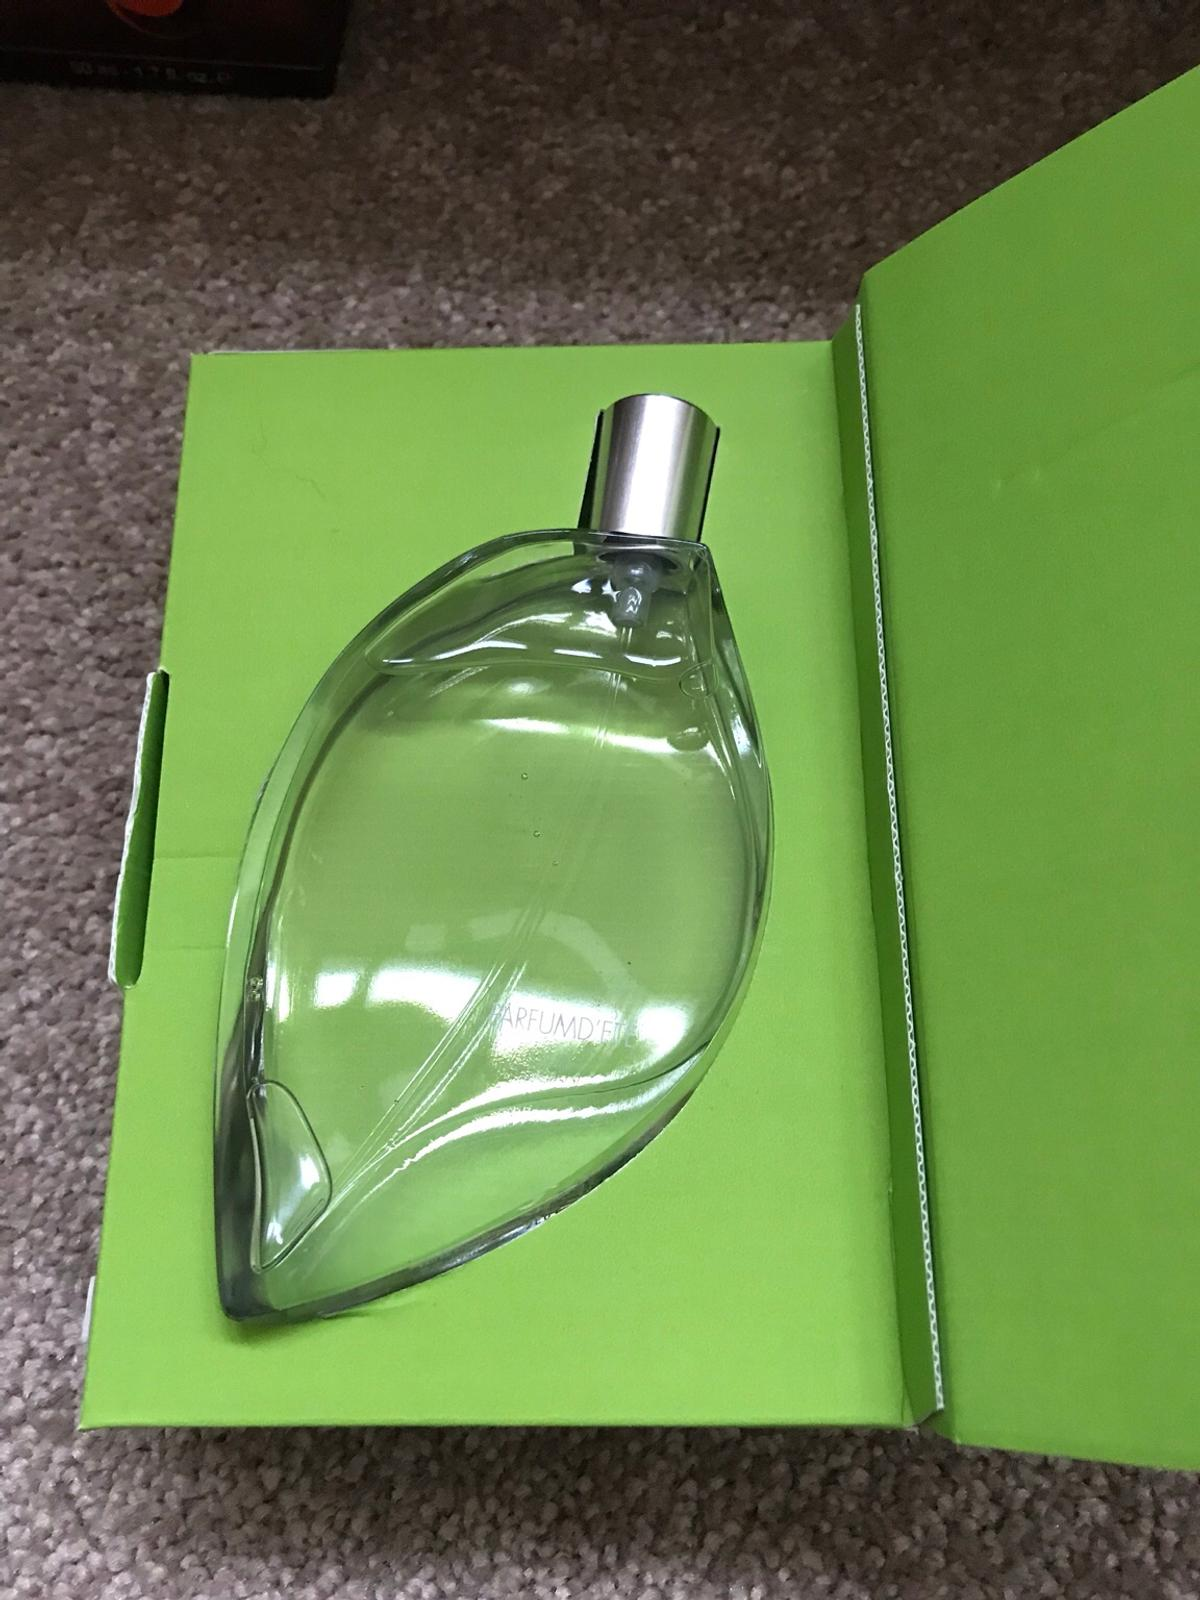 KEZON Parfeumd 100ml brand new never use . Collection or posted with small extra fee